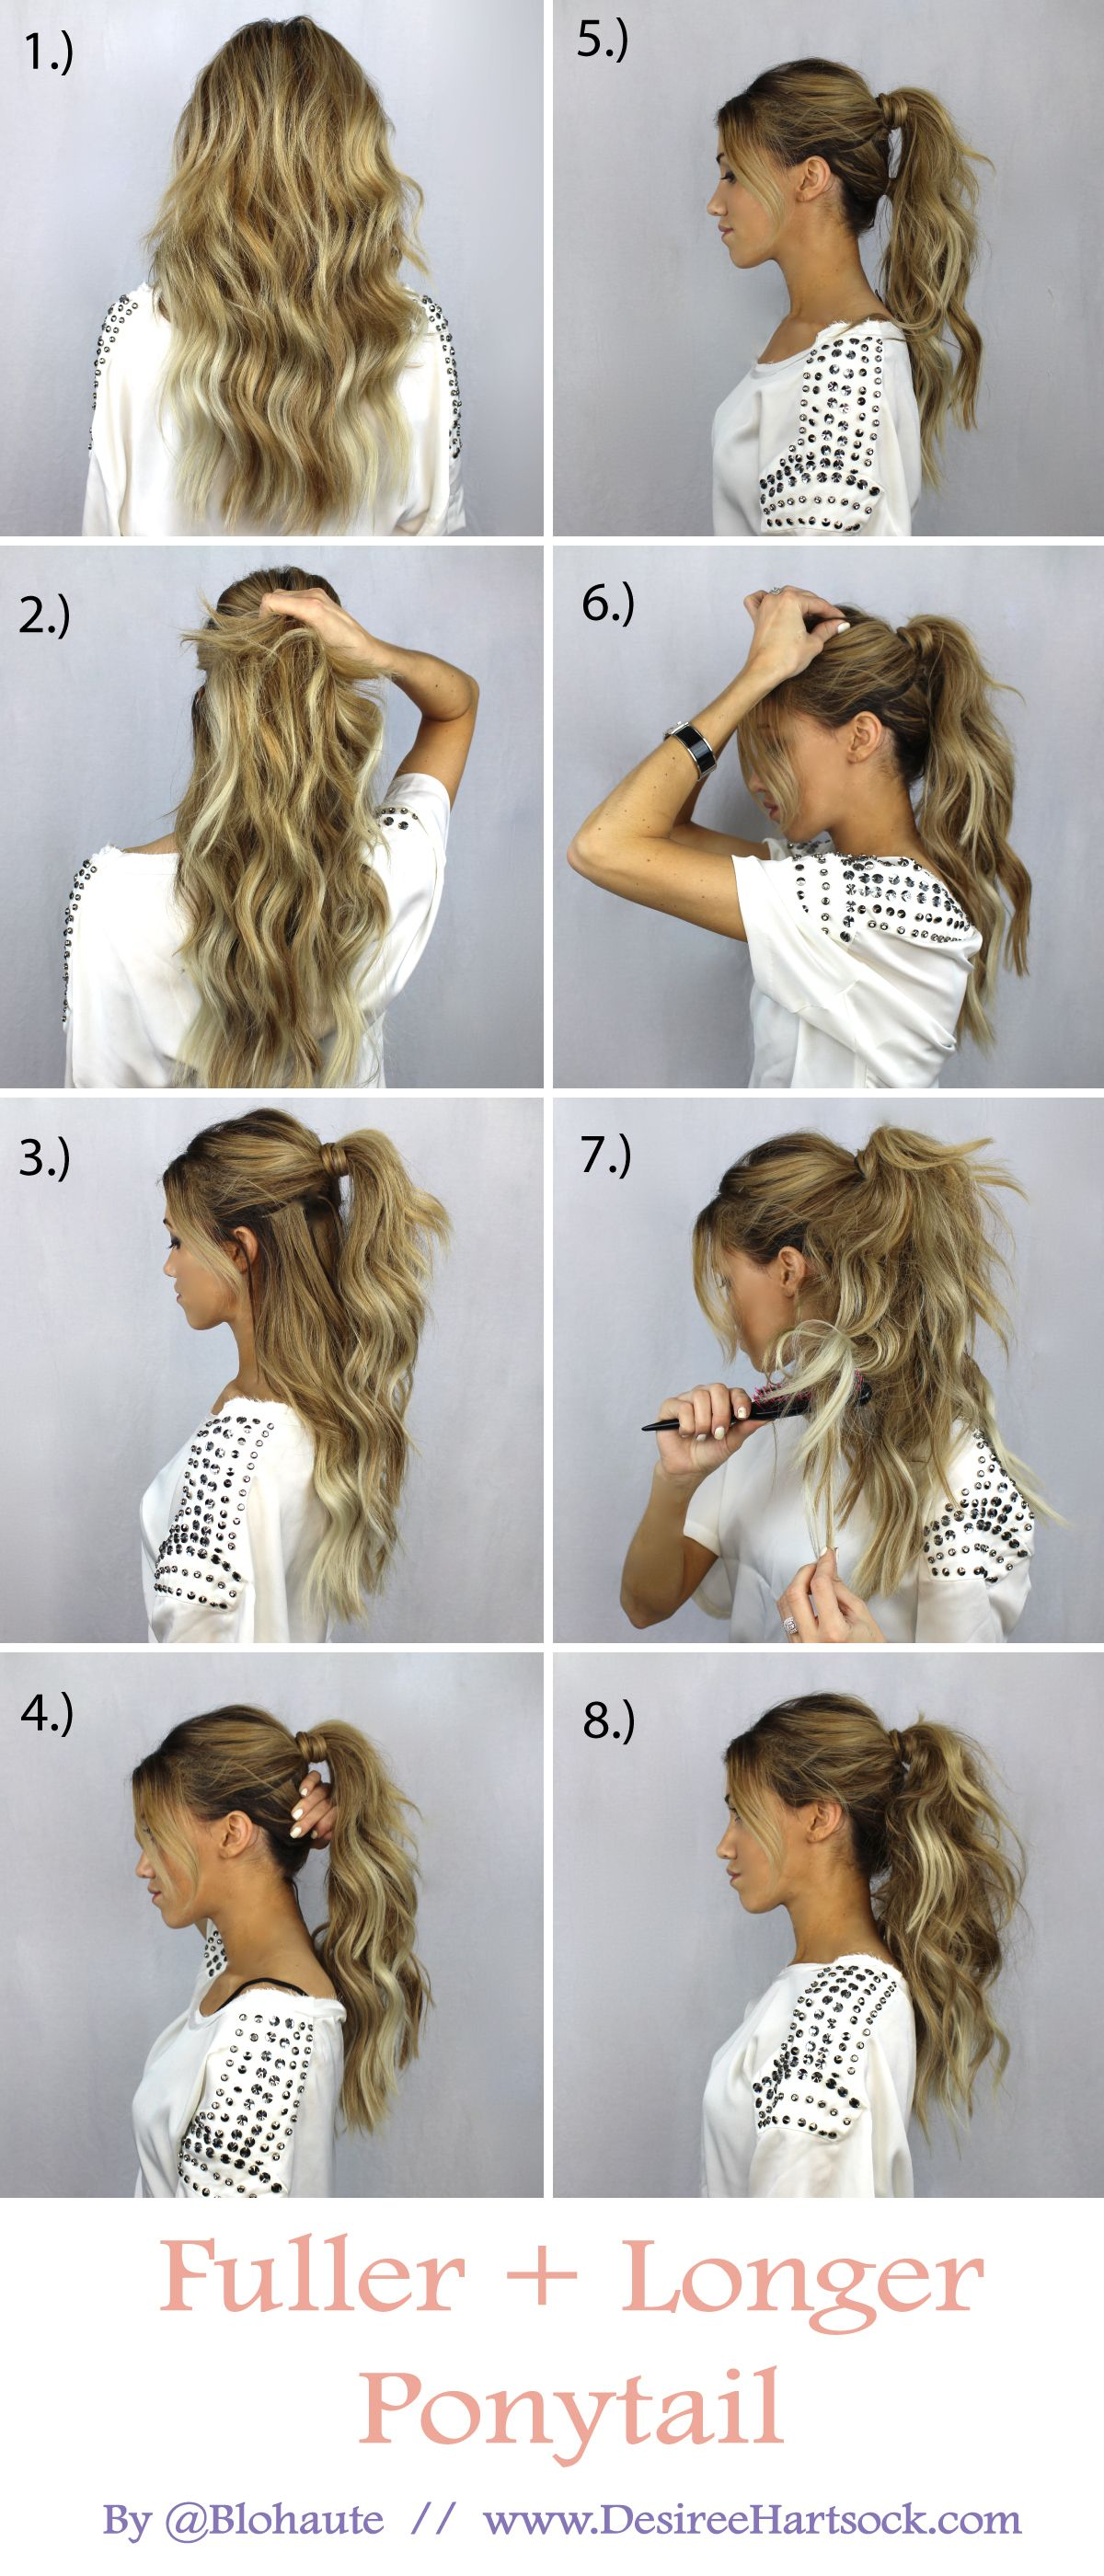 How To Create A Fuller Longer Ponytail Frisuren Frisur